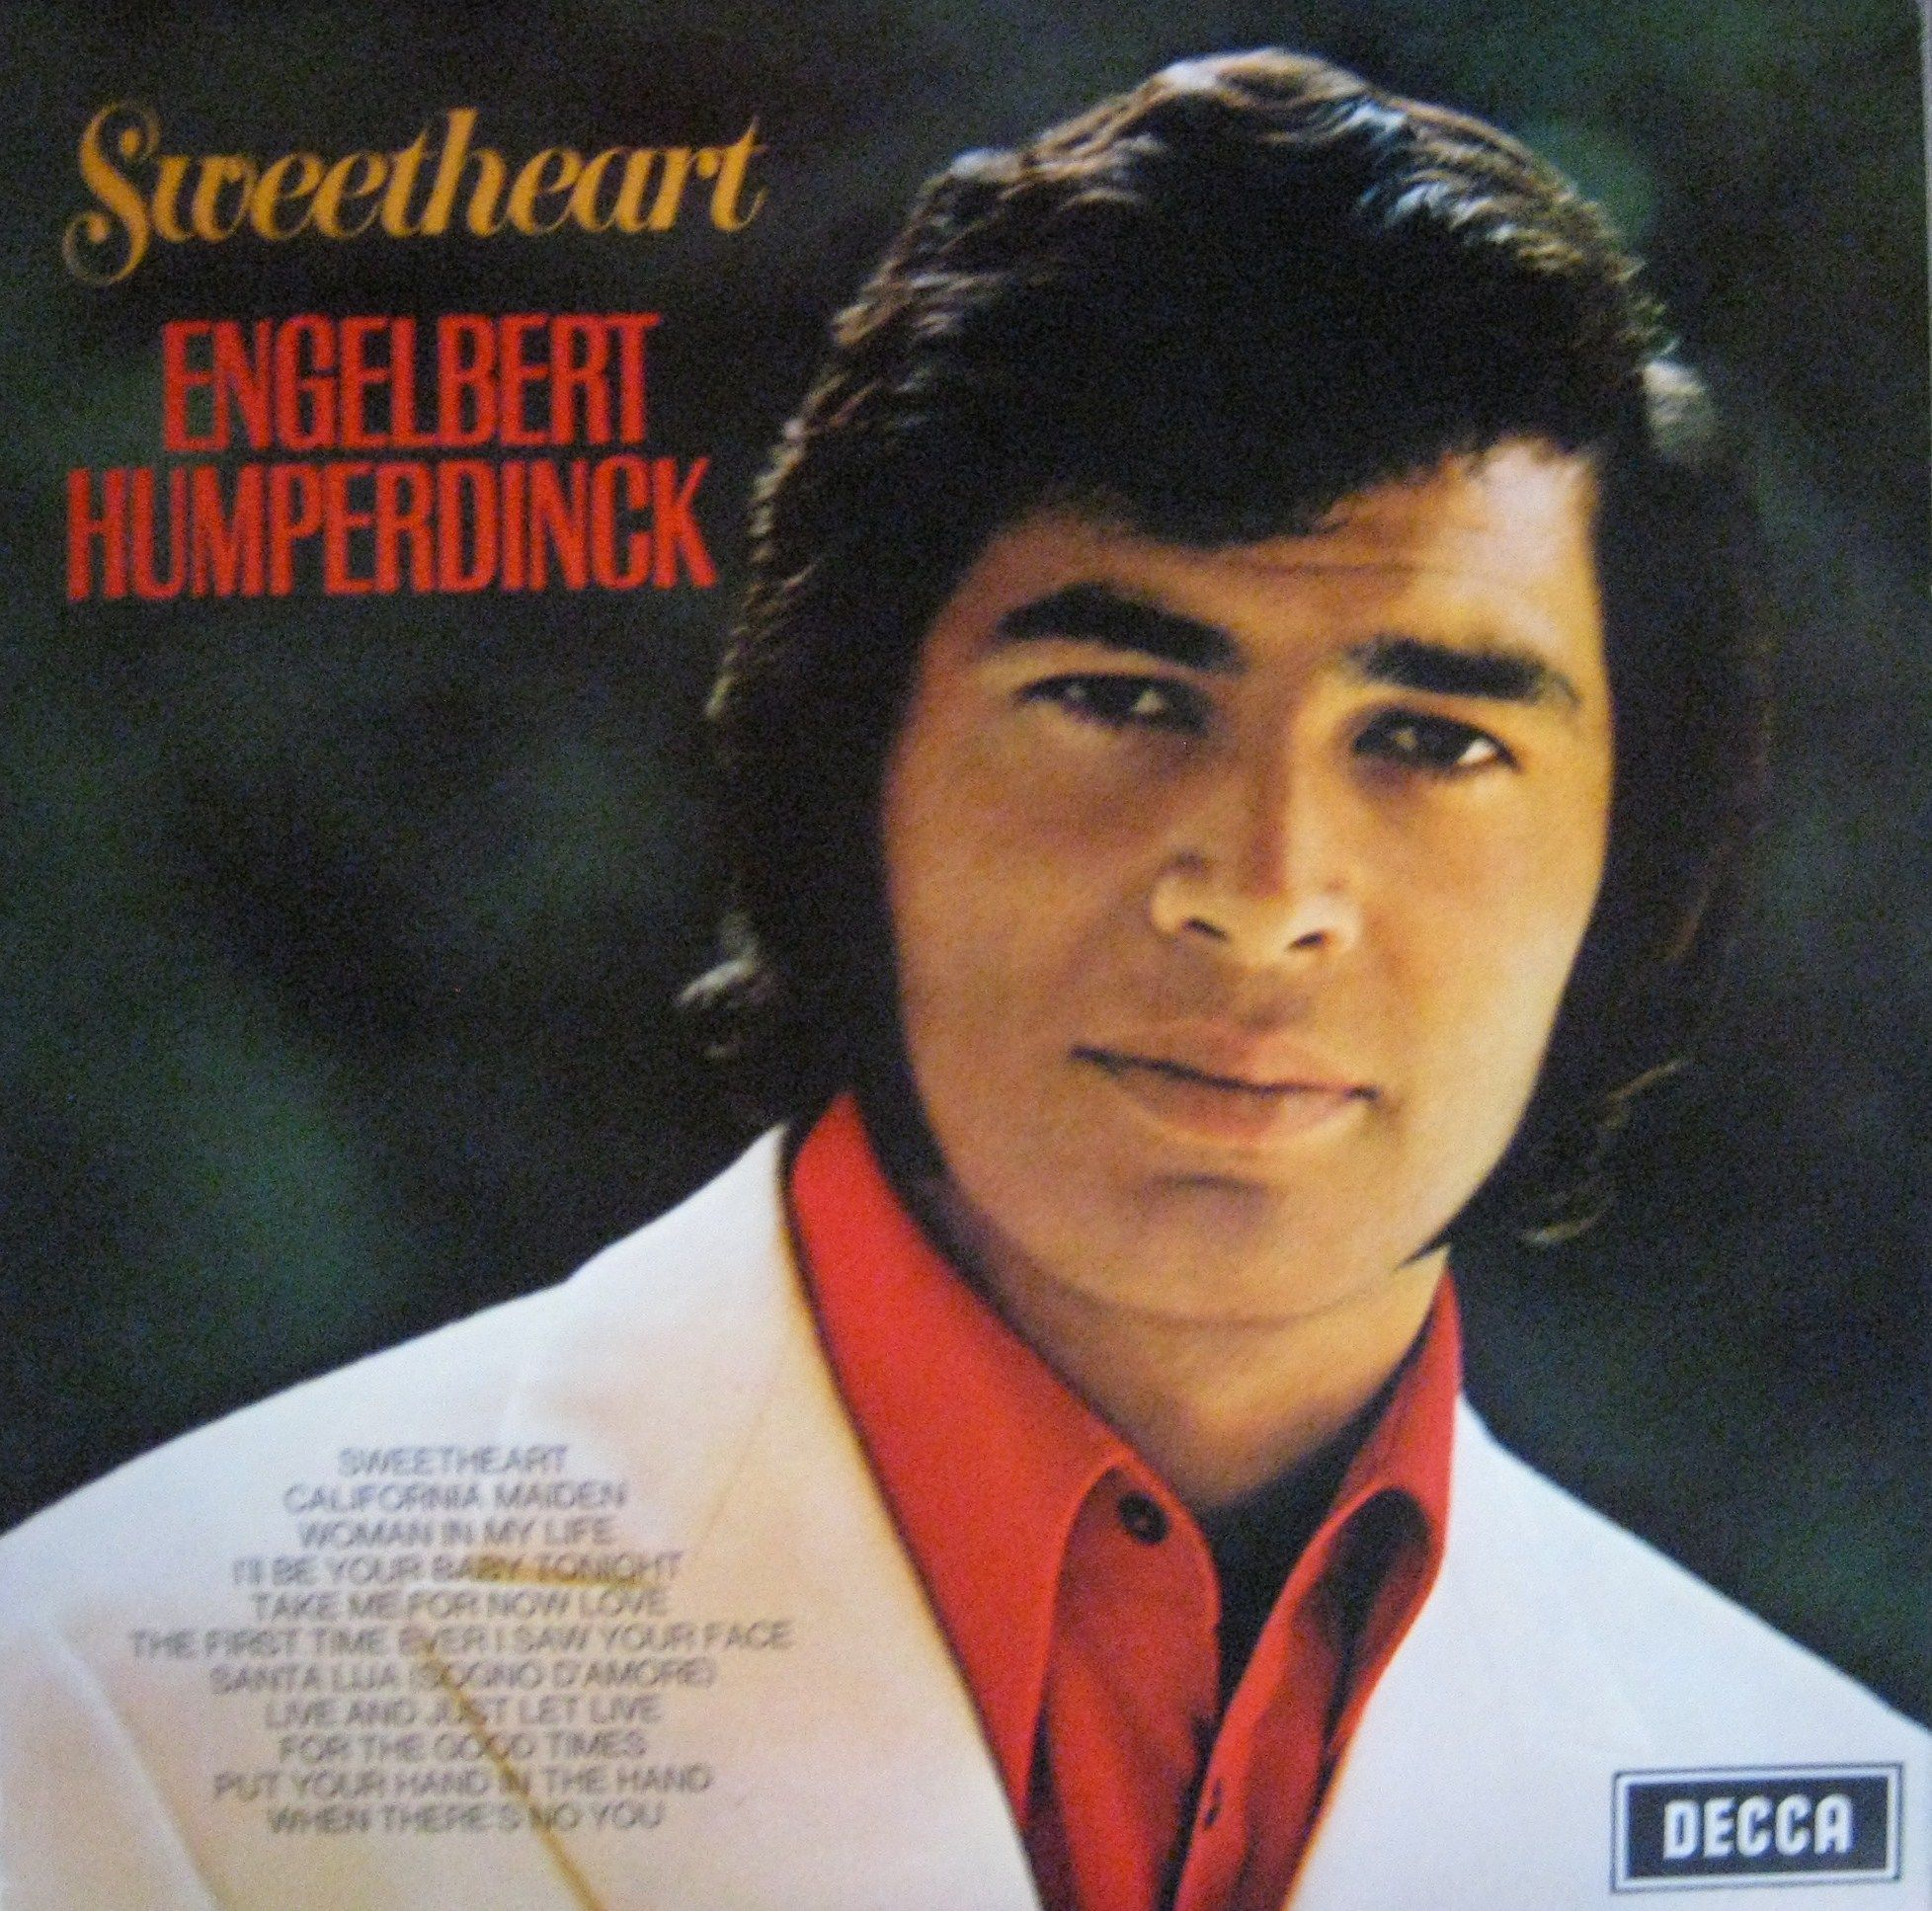 Engelbert Humperdinck - Sweetheart | Easy listening music, Love time, Ballad